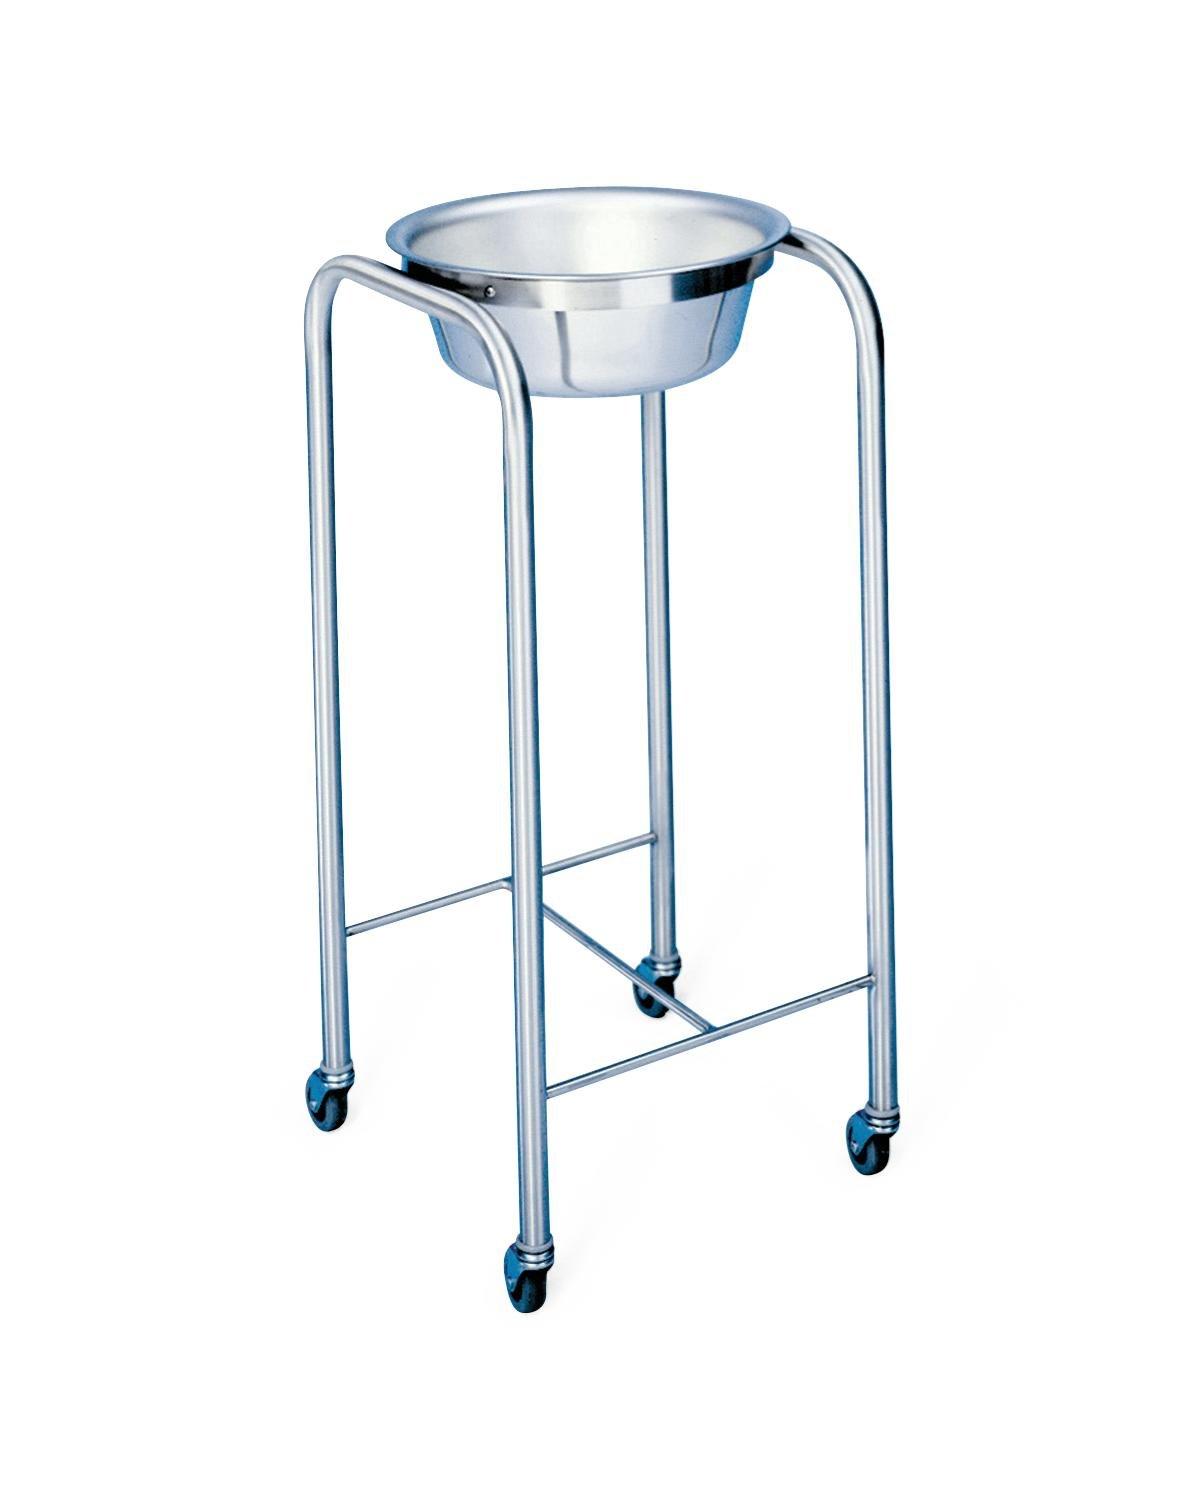 Medline MPH08780NMHB Single Basin Solution Stands by Blickman, 8.500